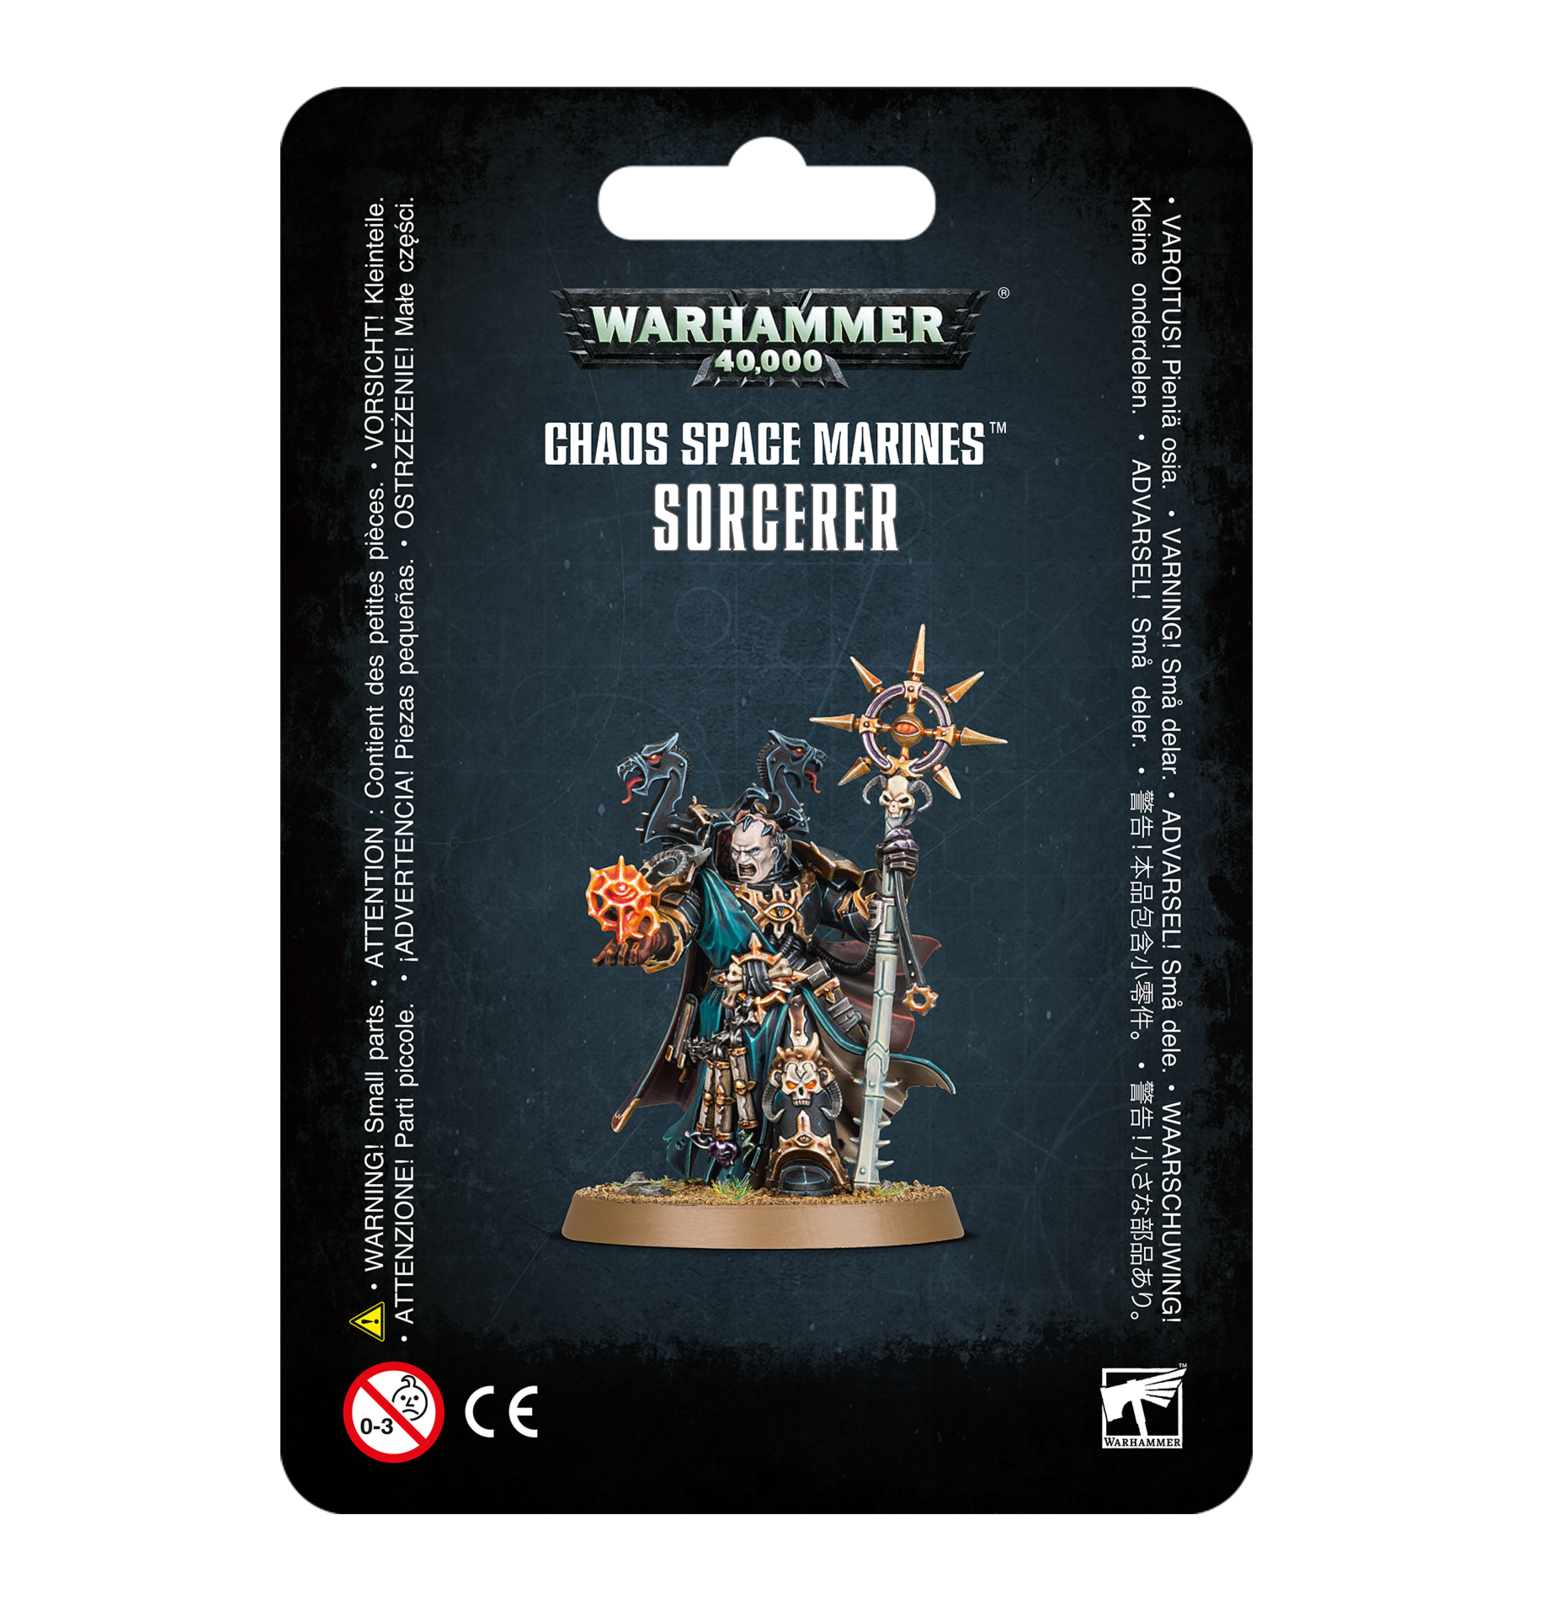 Warhammer 40,000: Chaos Space Marines Sorcerer image